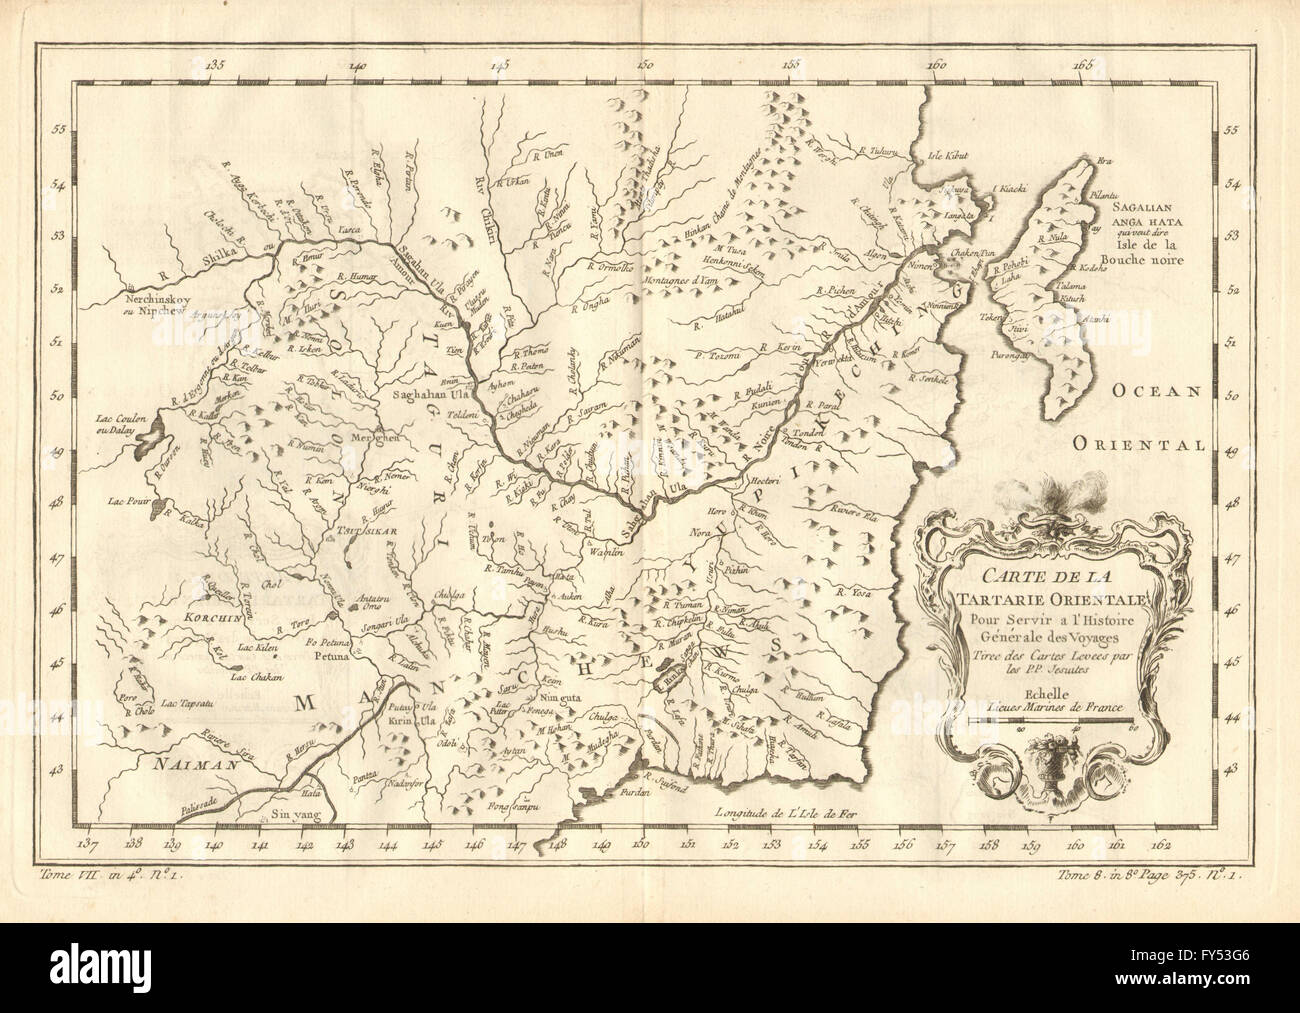 River Map Of China.Tartarie Orientale Eastern Tartary Amur River Russia China Stock